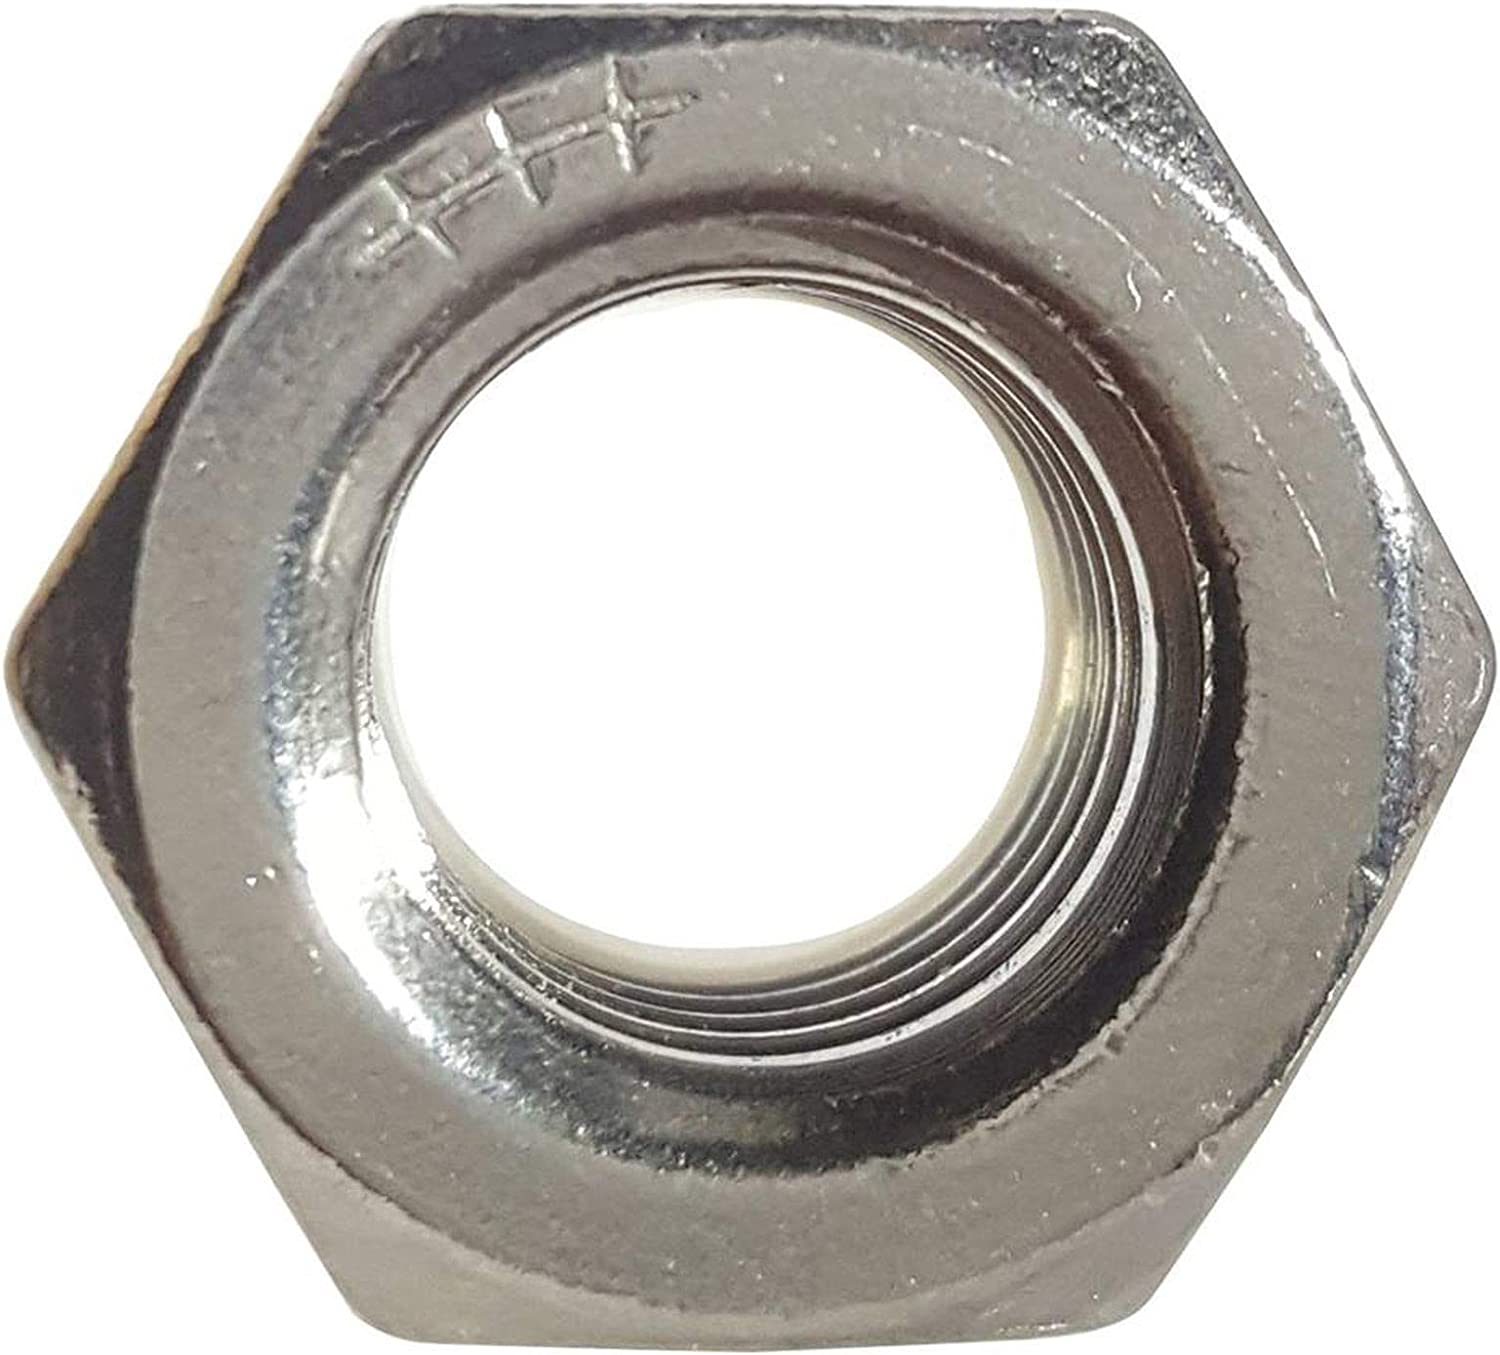 5//8-11 Nylon Lock Nut Stainless Steel 18-8 Elastic Insert Hex Nuts Qty 50